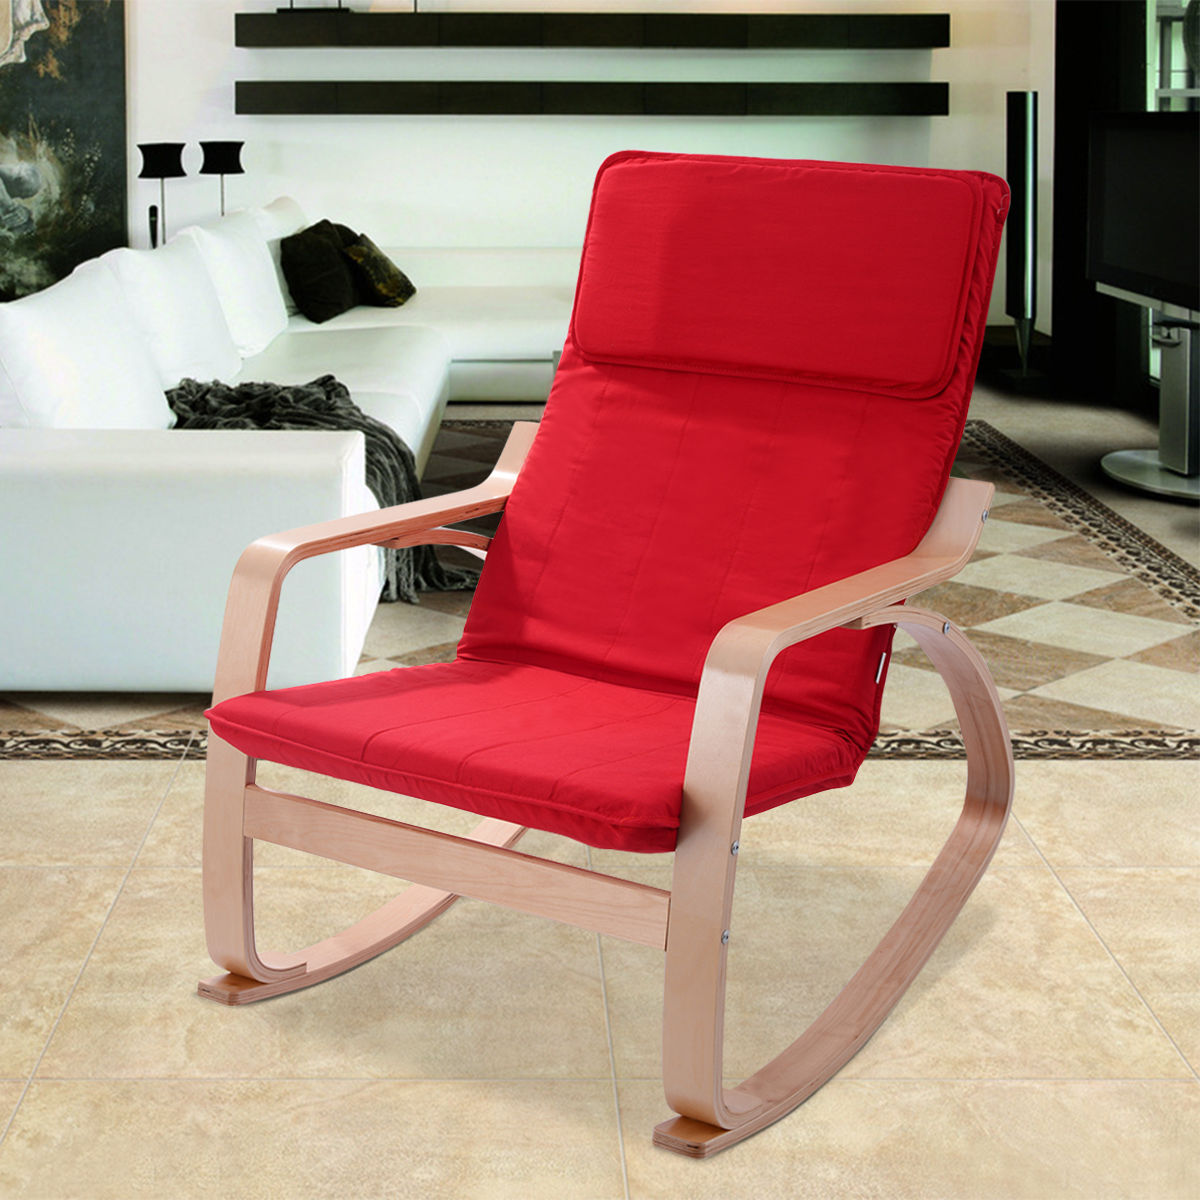 Costway Red Rocking Chair Armchair Leisure Lounge Accent Living Room Furniture by Costway